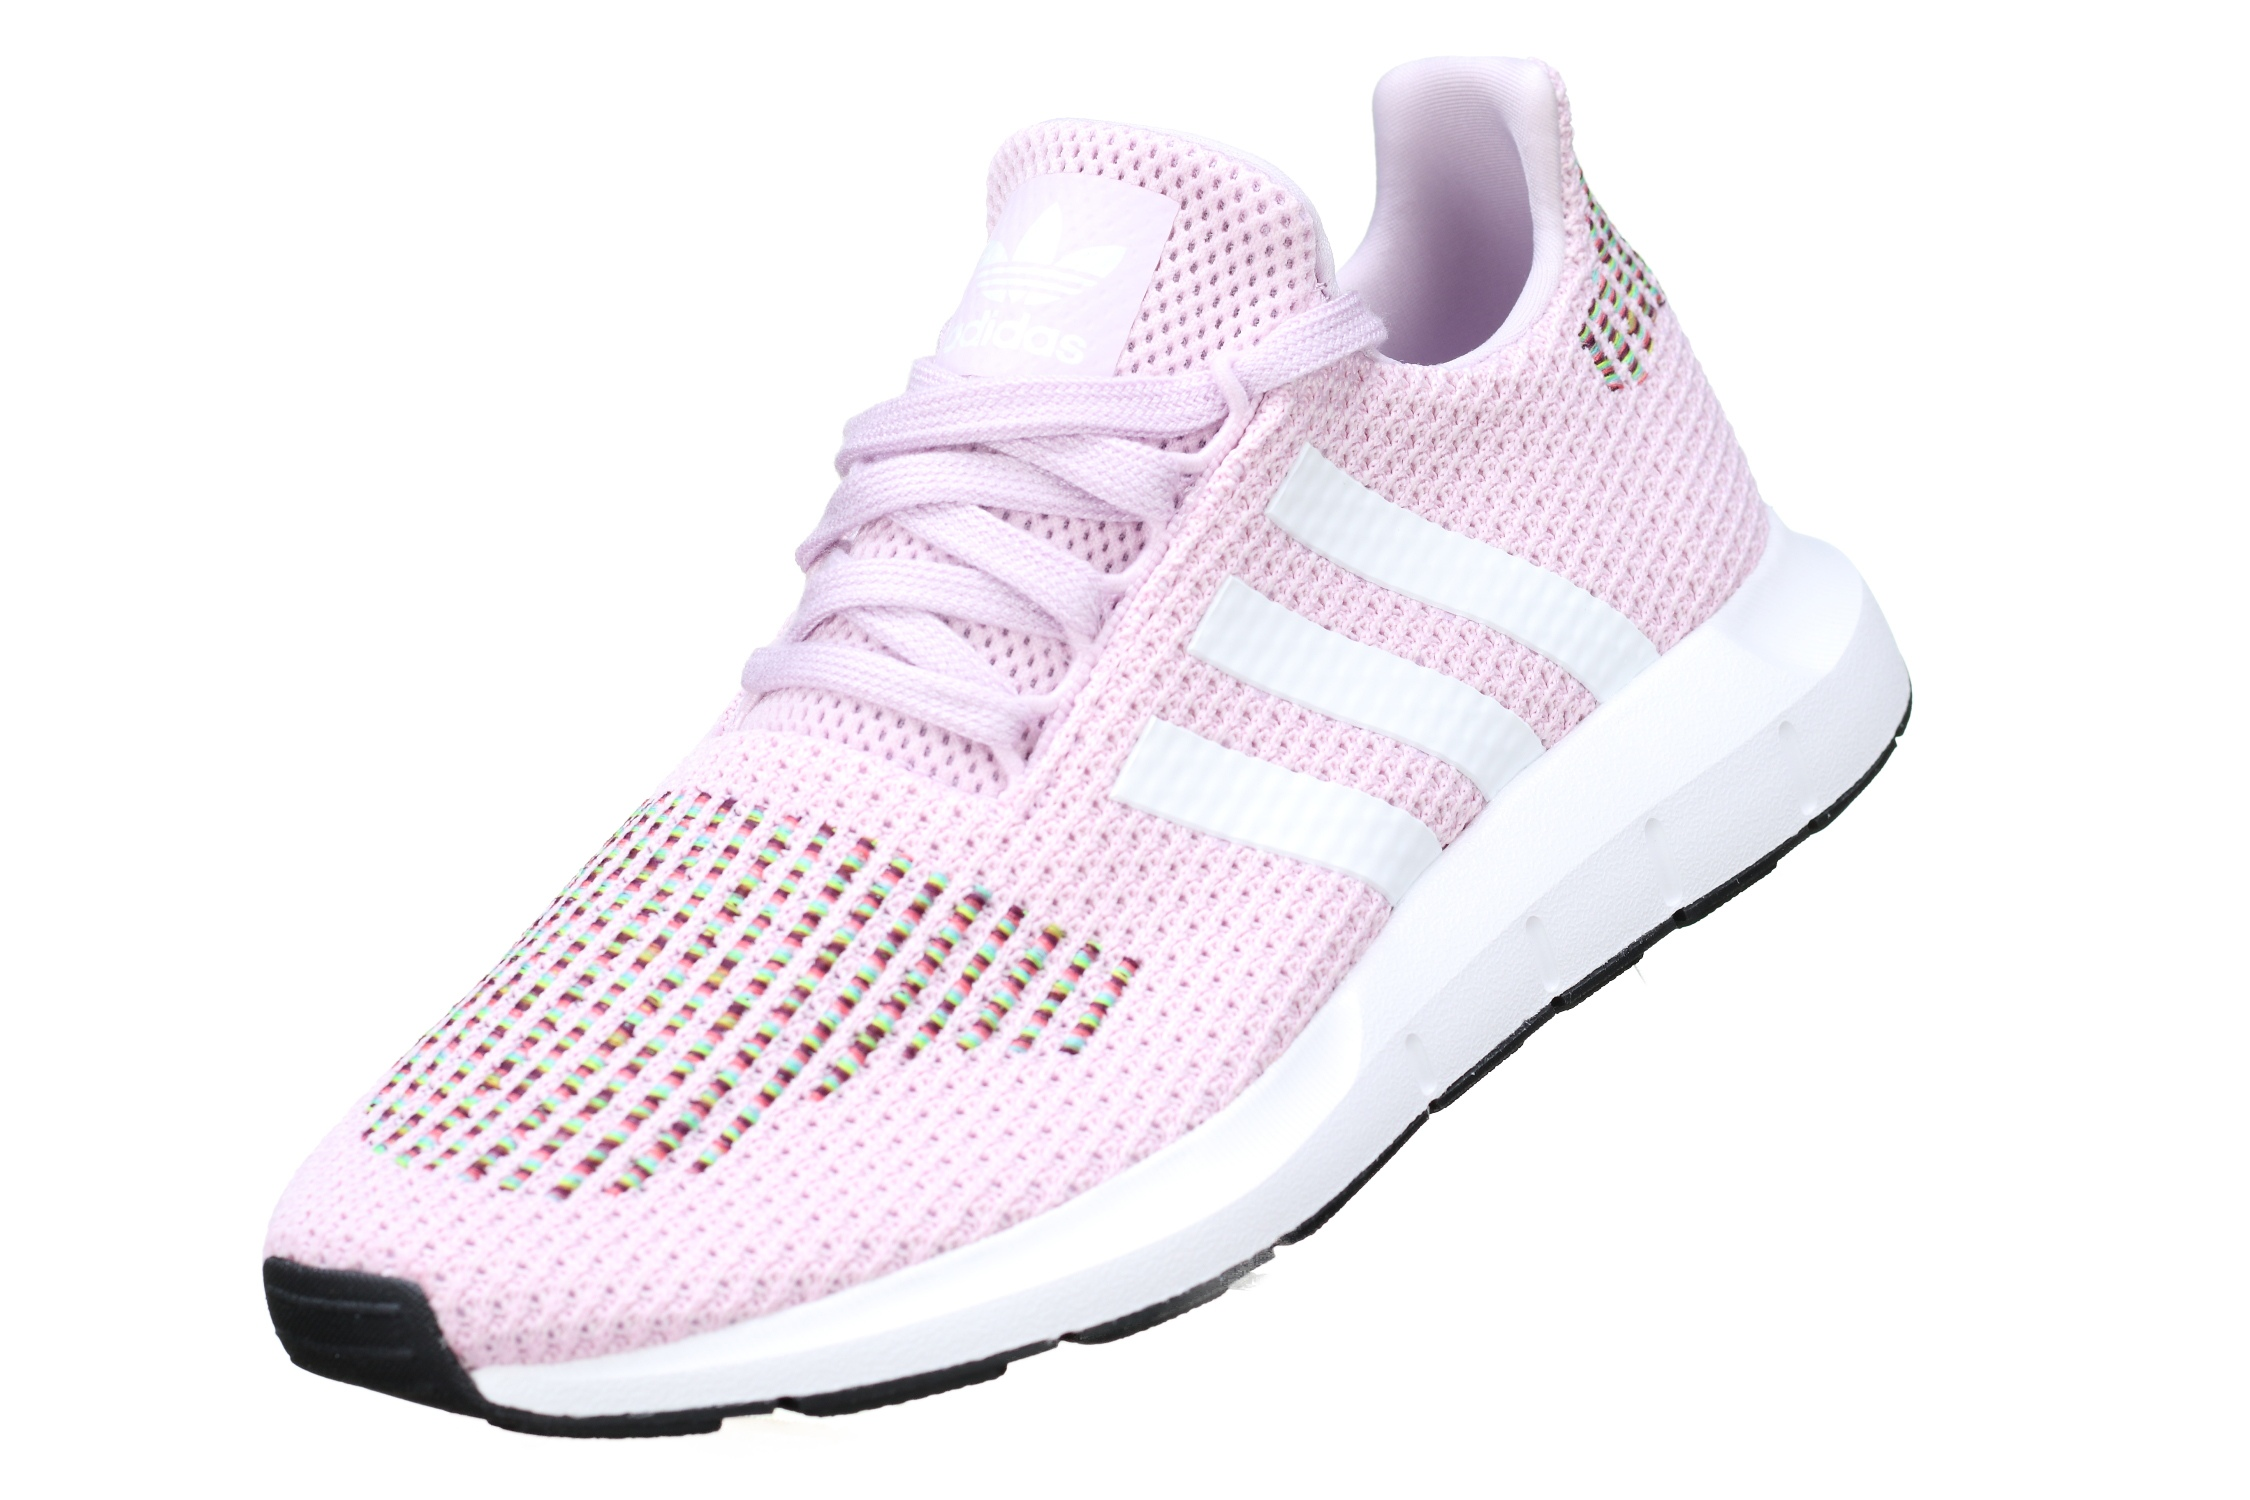 http://www.leadermode.com/147541/adidas-swift-run-w-cq2023-rose.jpg